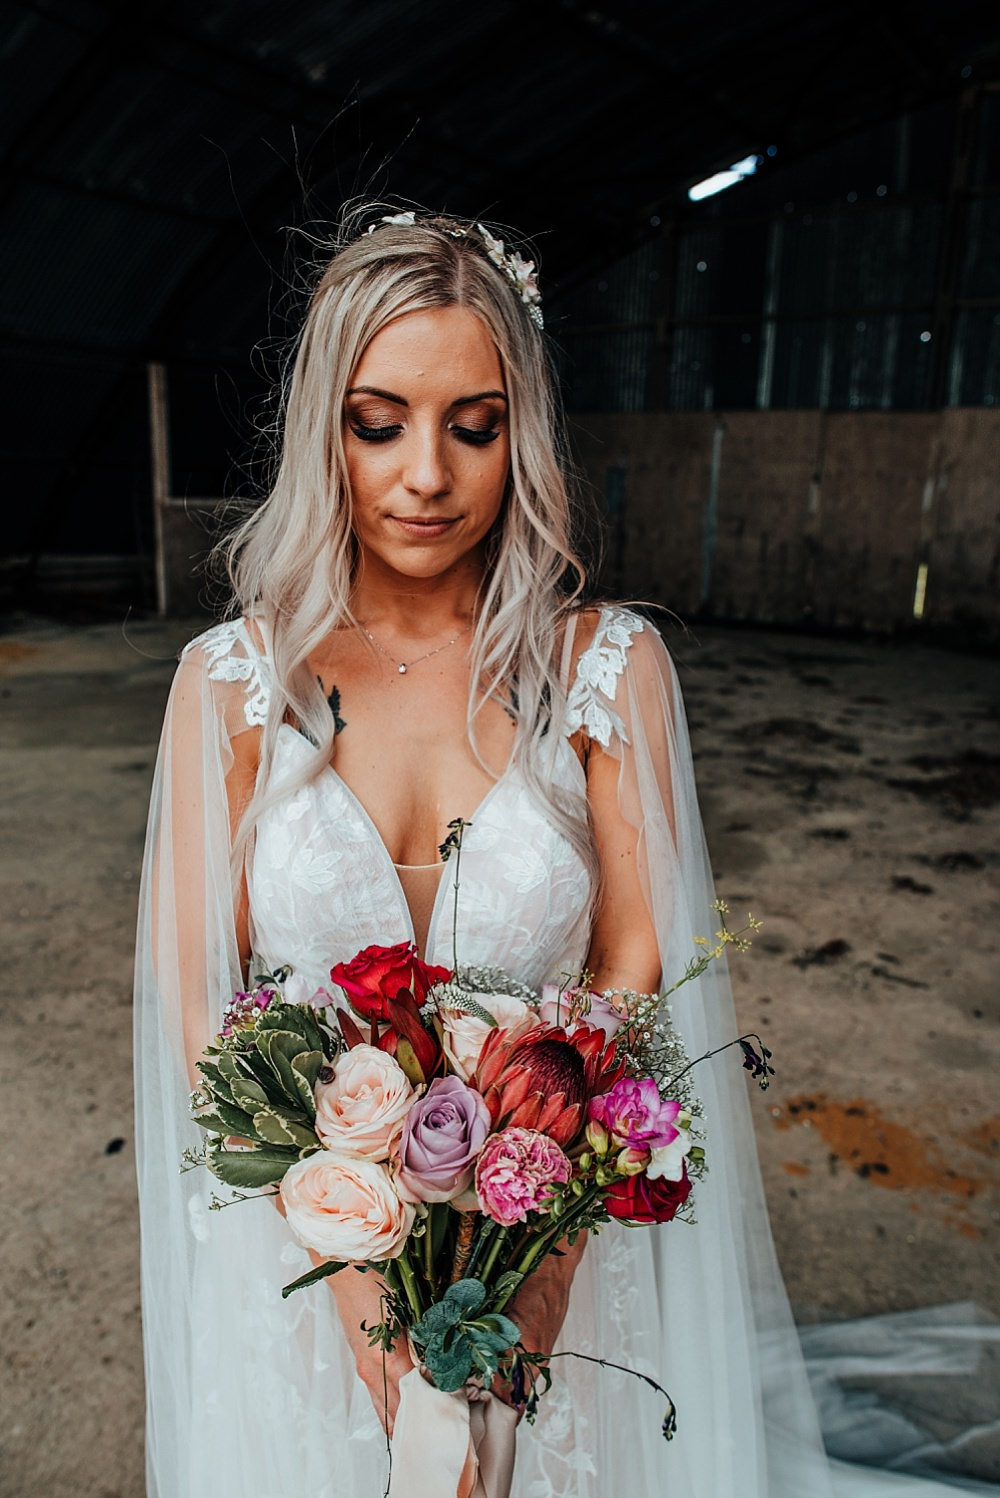 Bride Bridal Dress Gown Fox Bridal Nude Straps Train Cape Bouquet Flowers Bride Bridal Pink Purple Rose Protea Succulent Boho Rustic Wedding This and That Photography